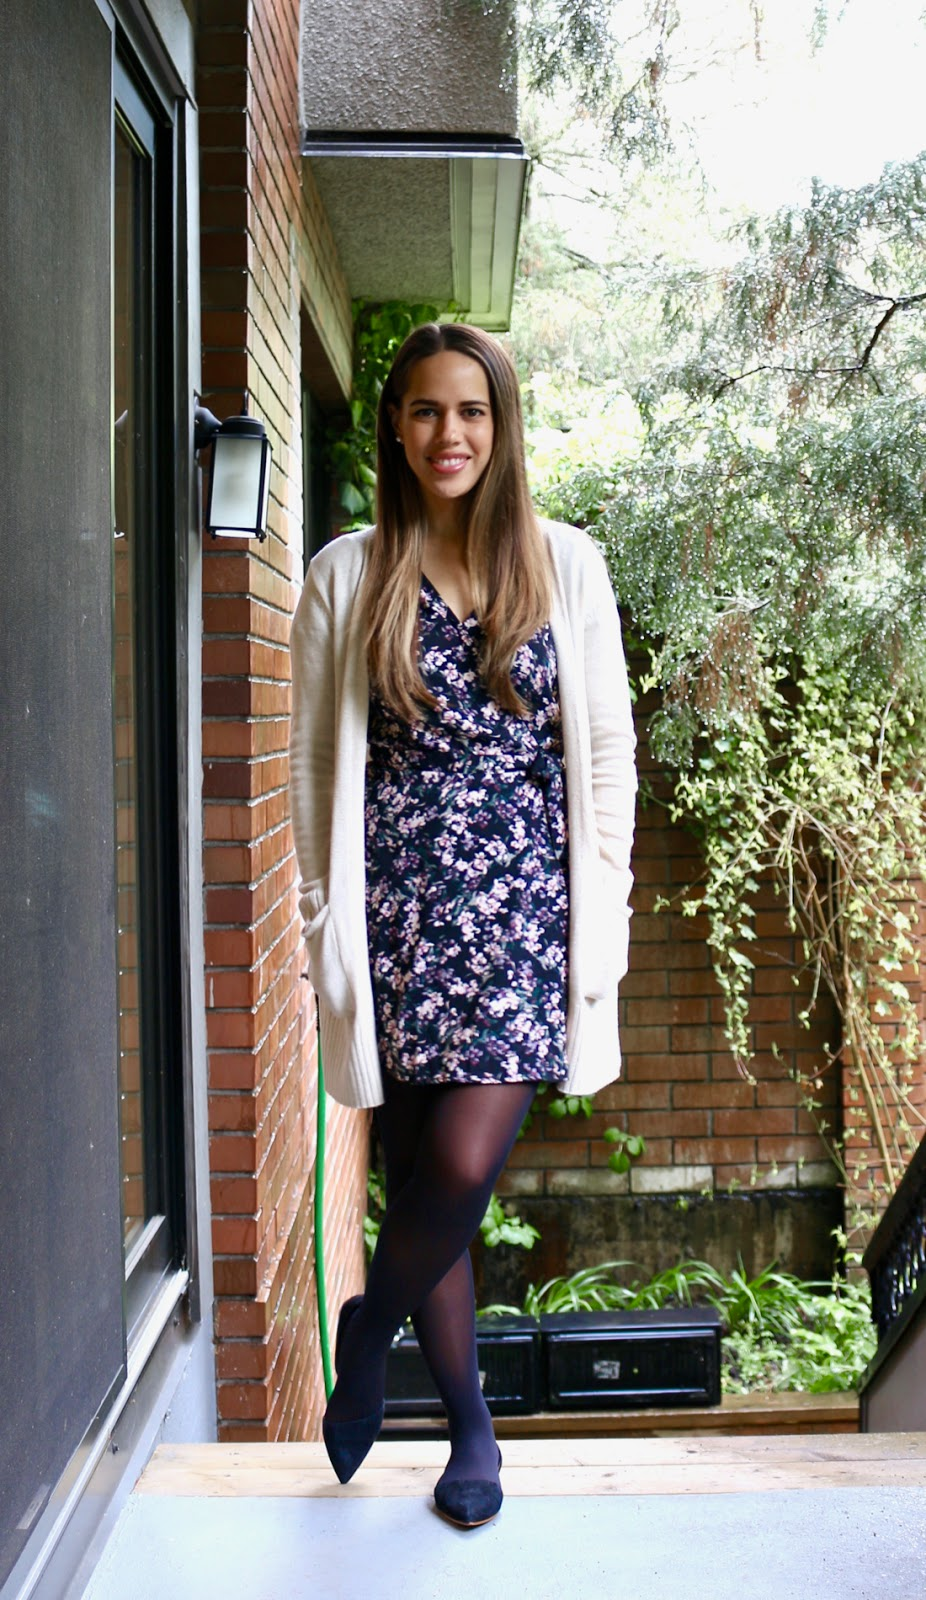 Jules in Flats - Floral Wrap Dress with Cardigan (Business Casual Spring Workwear on a Budget)